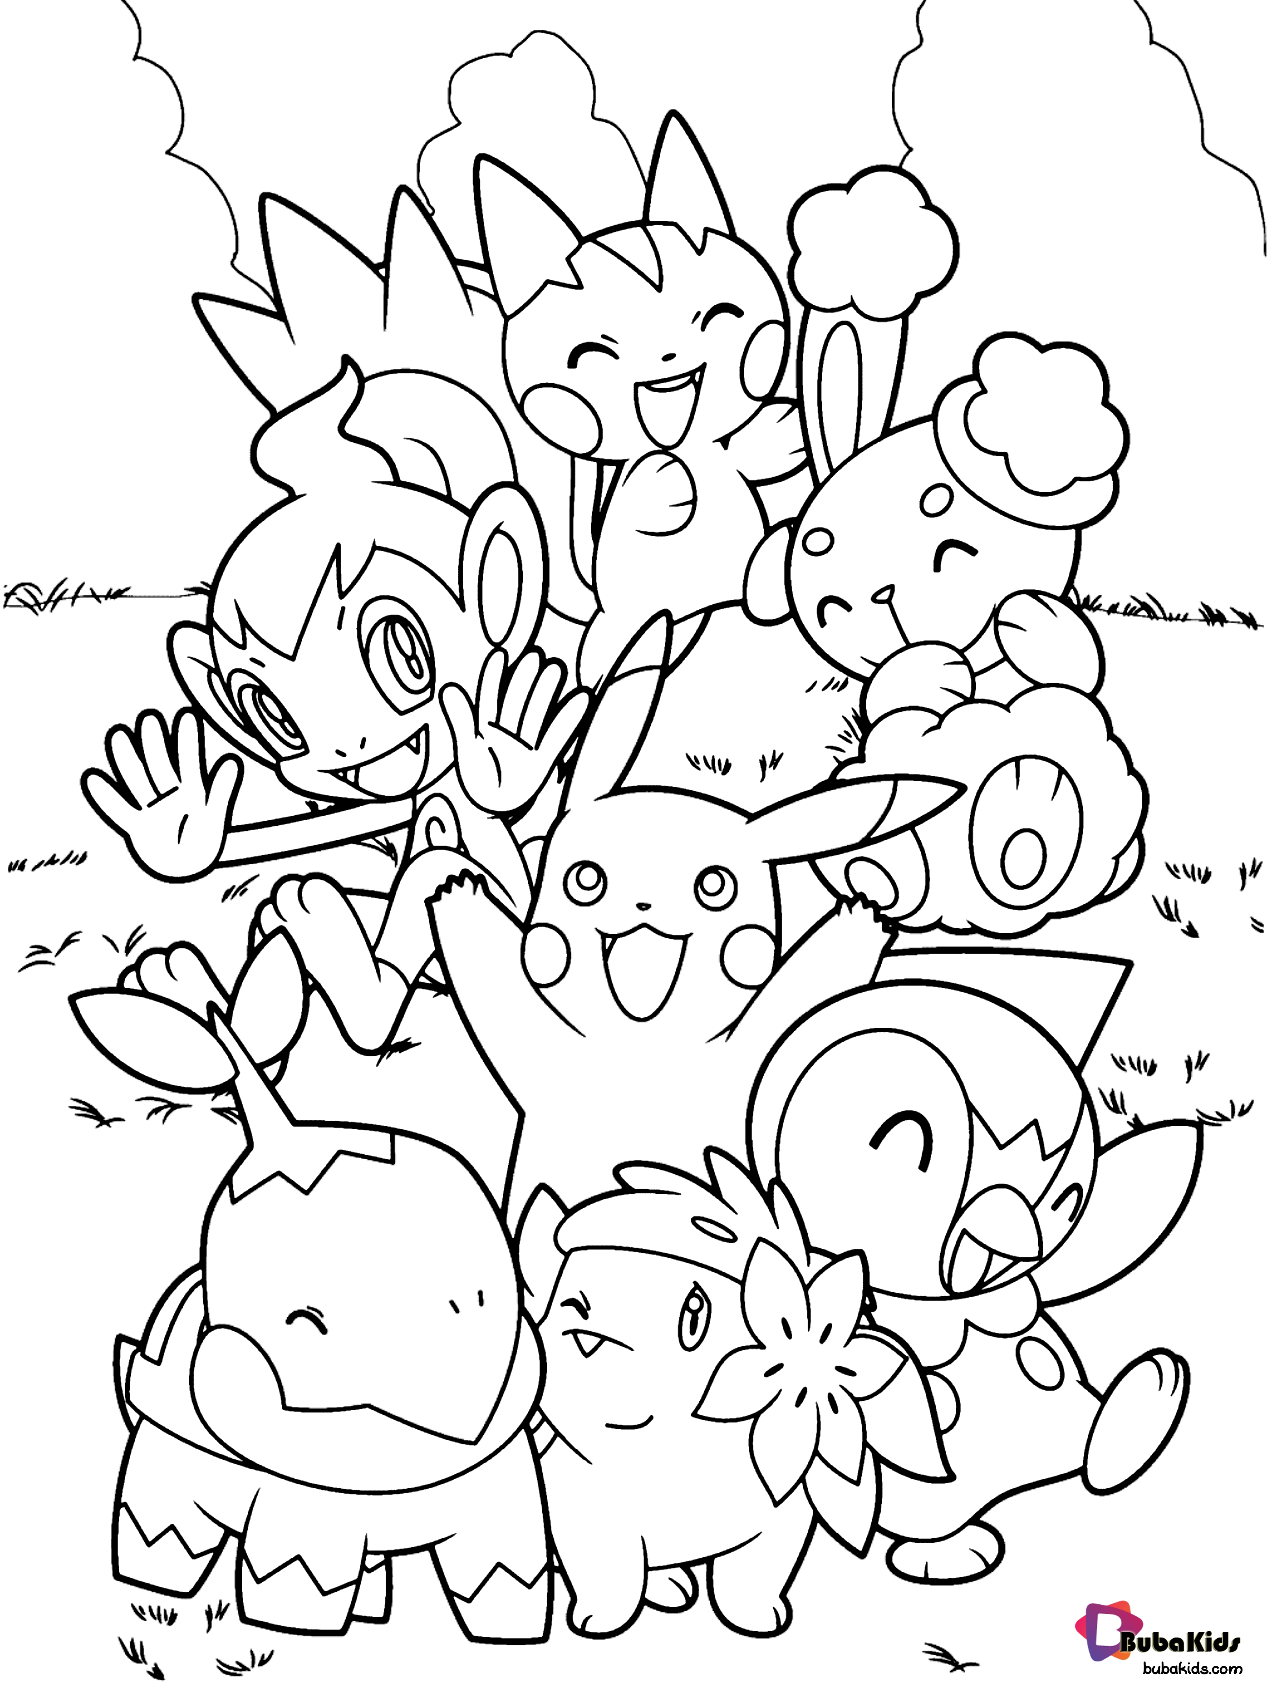 All Pokemon Printable Coloring Page Collection Of Cartoon Coloring Pages For Teenage Printable Tha Pokemon Coloring Pages Fall Coloring Pages Pokemon Coloring